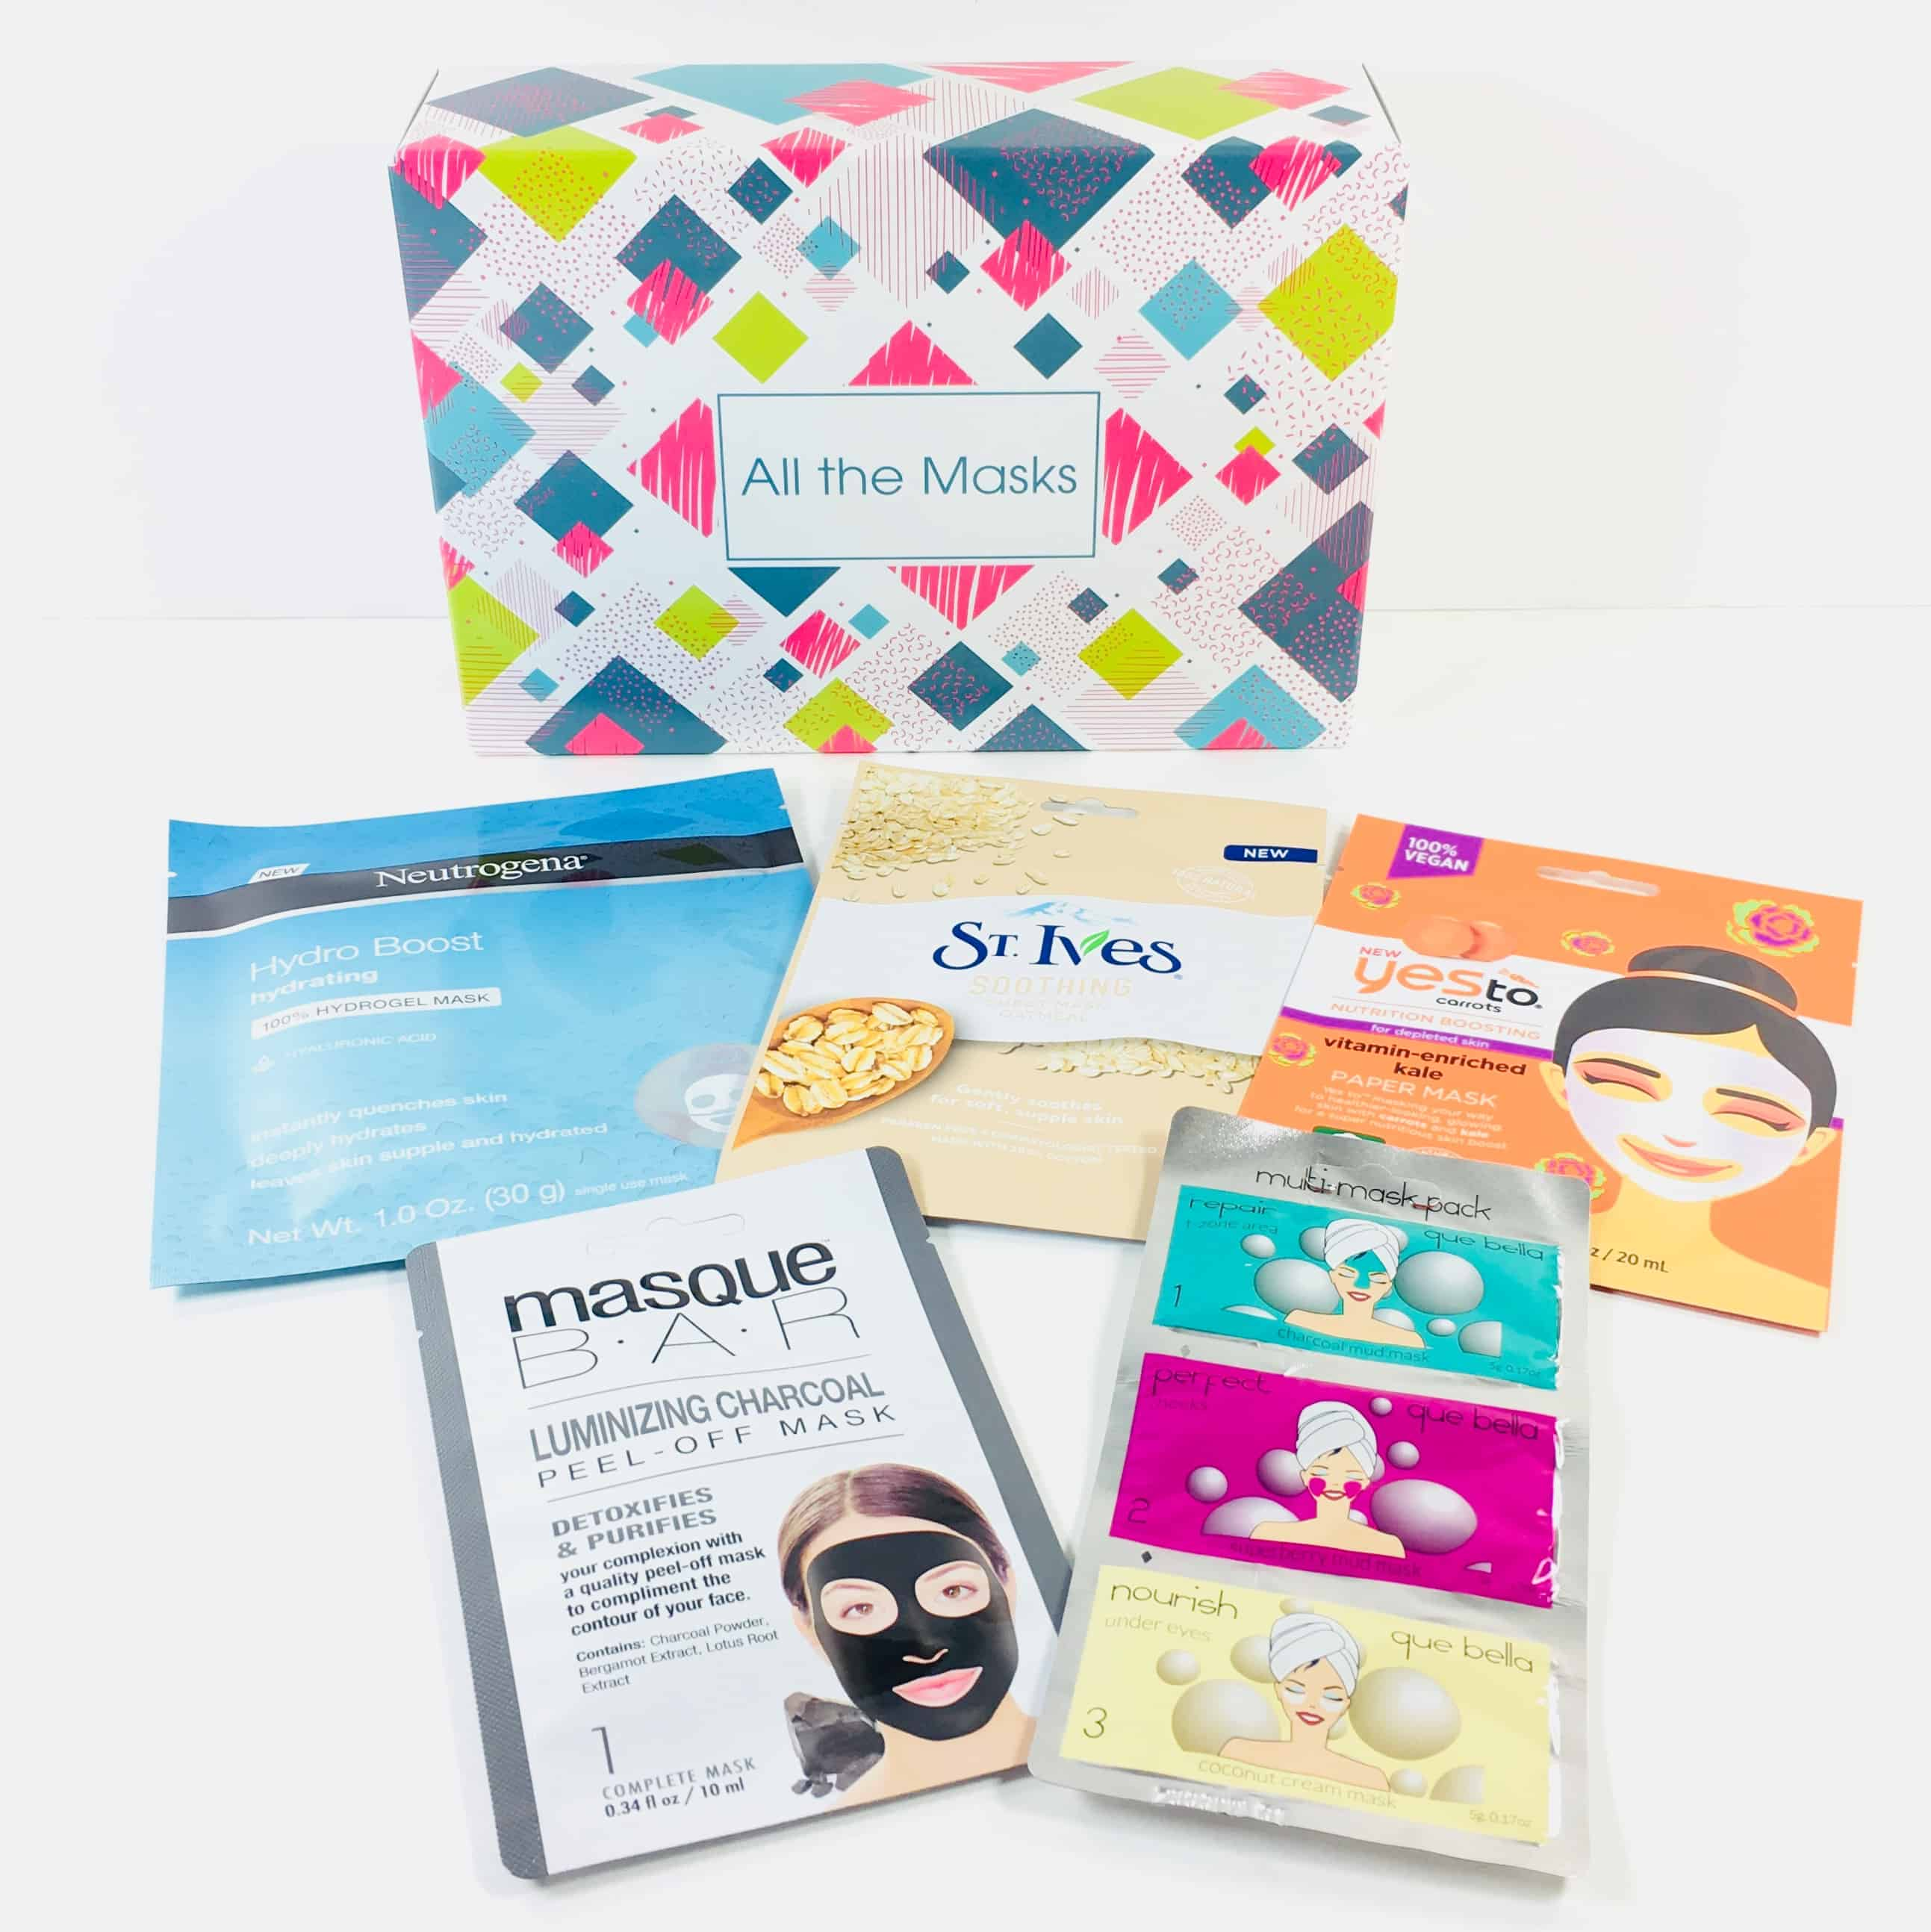 Target Beauty Box Review March 2018 – Hello Radiance